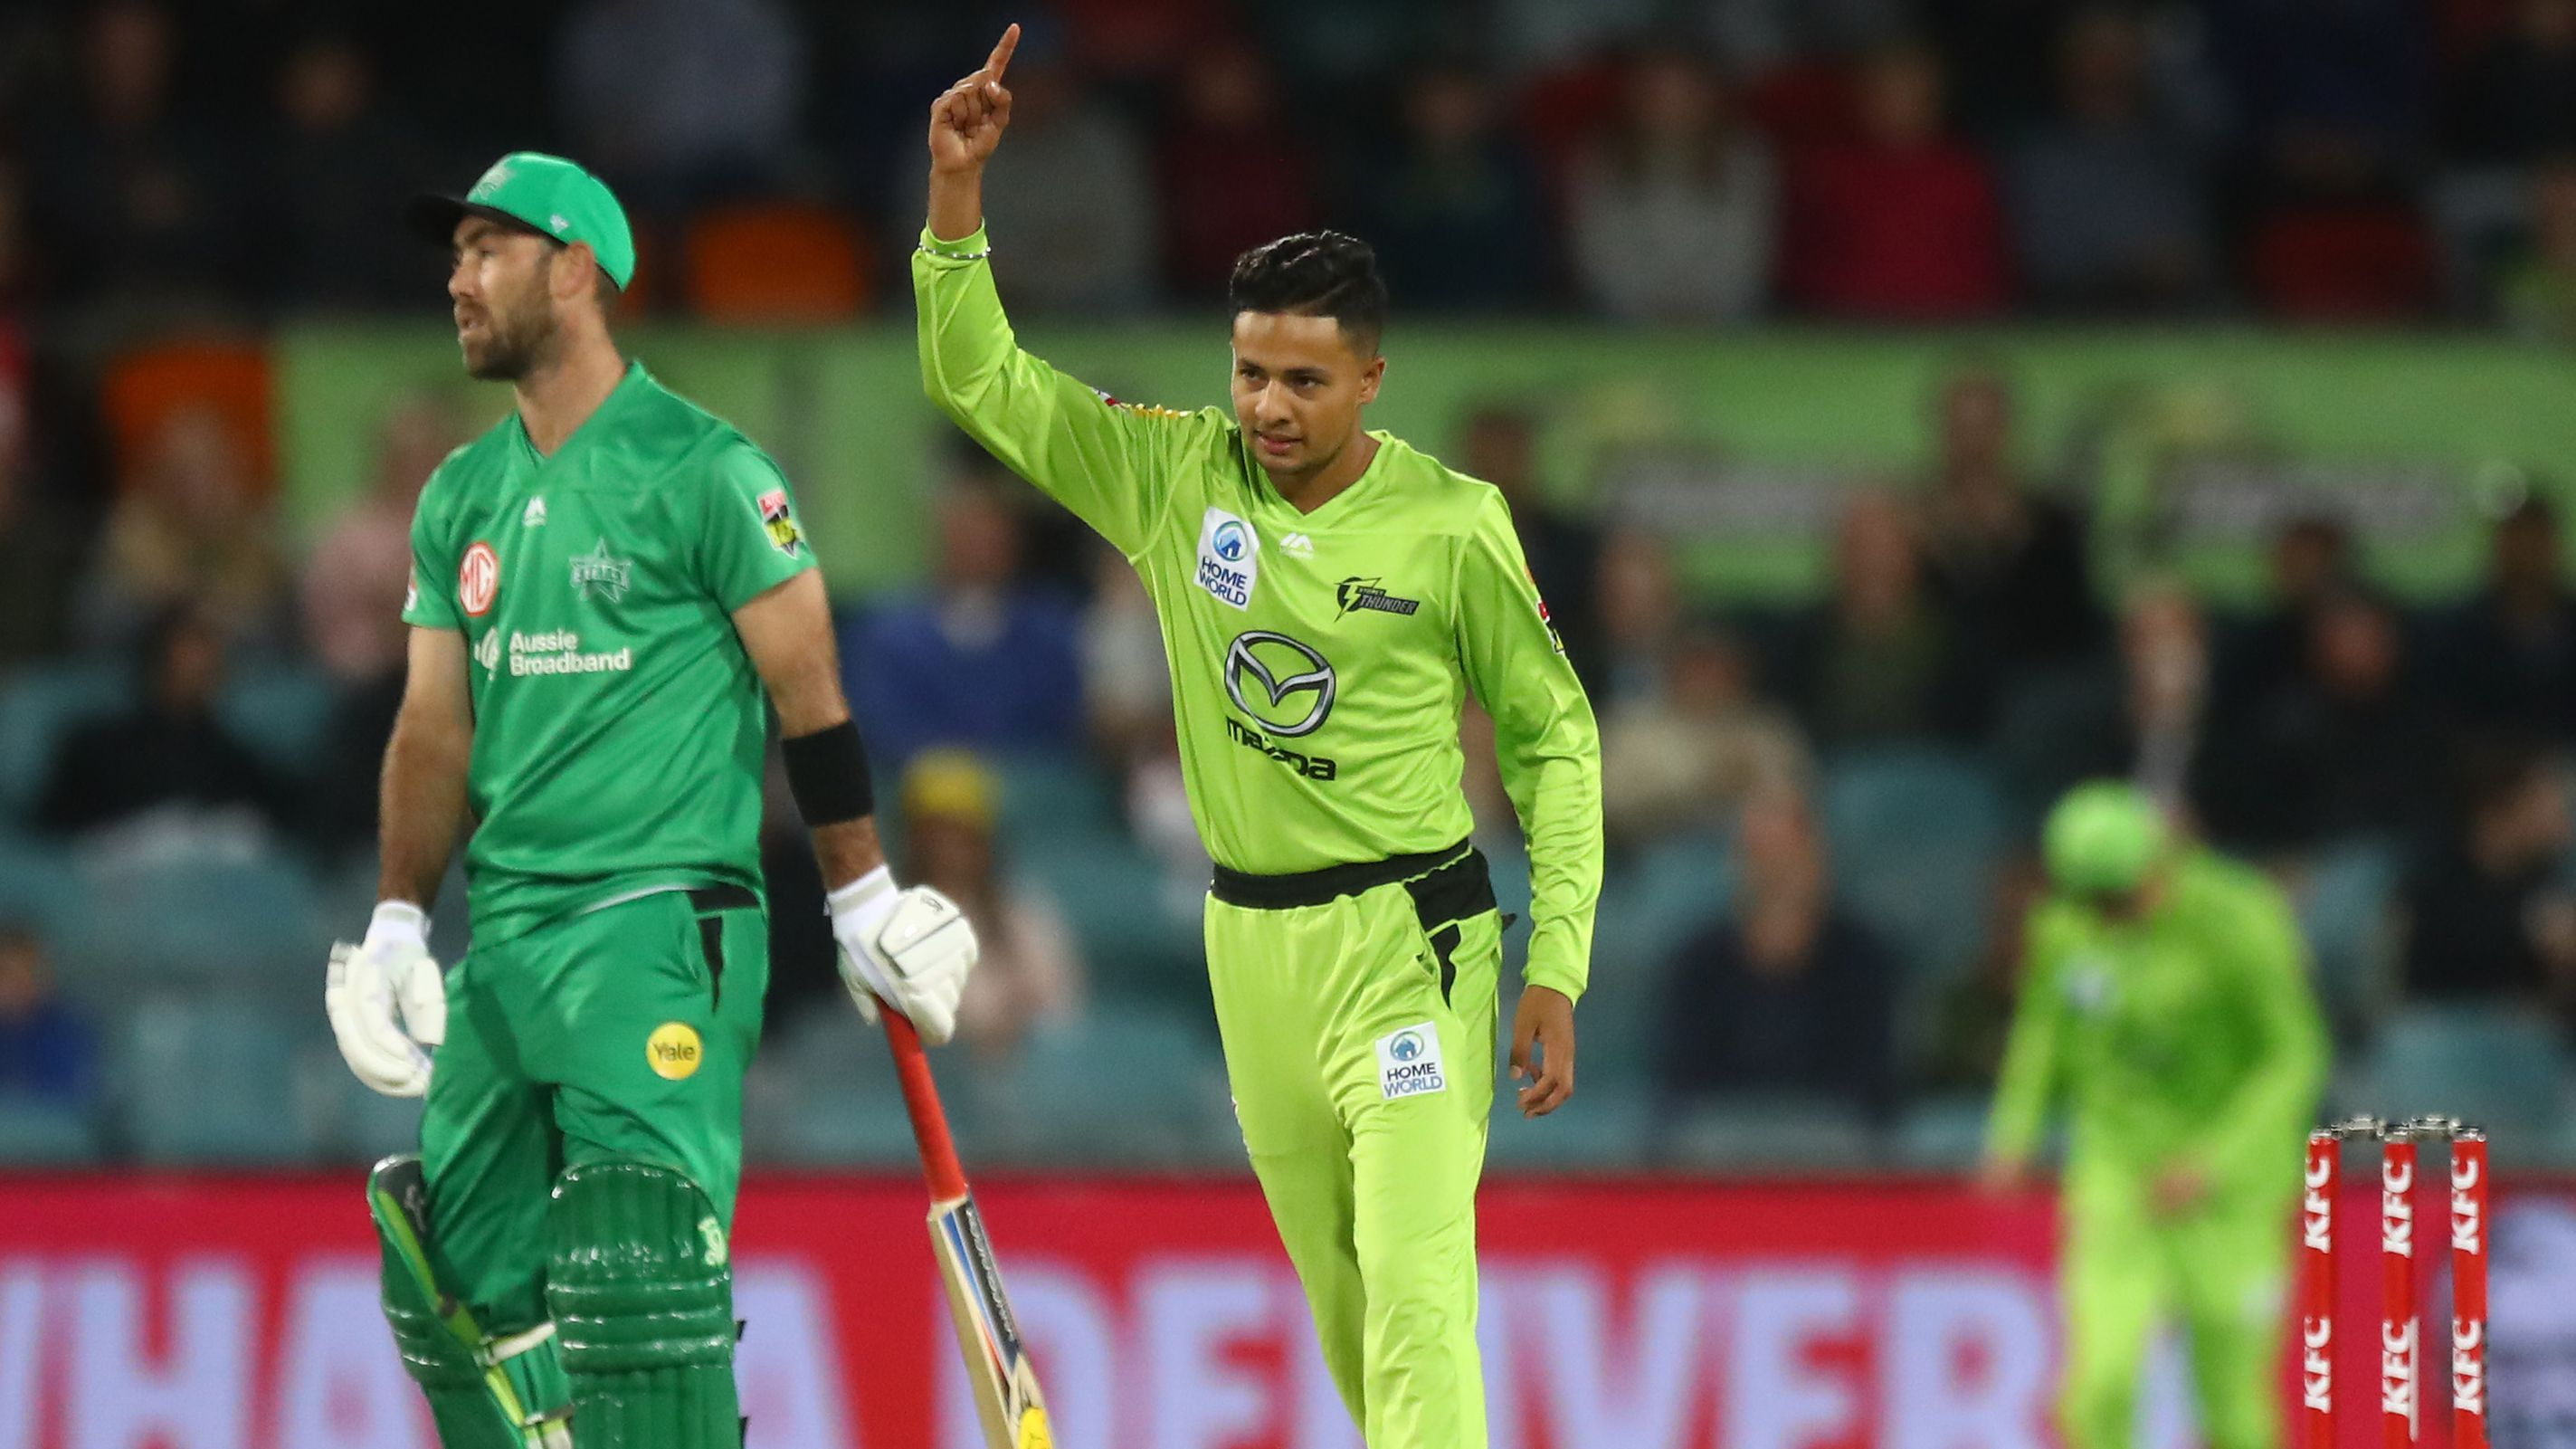 Ricky Ponting picks his BBL bolters for Australia's T20 tour of New Zealand